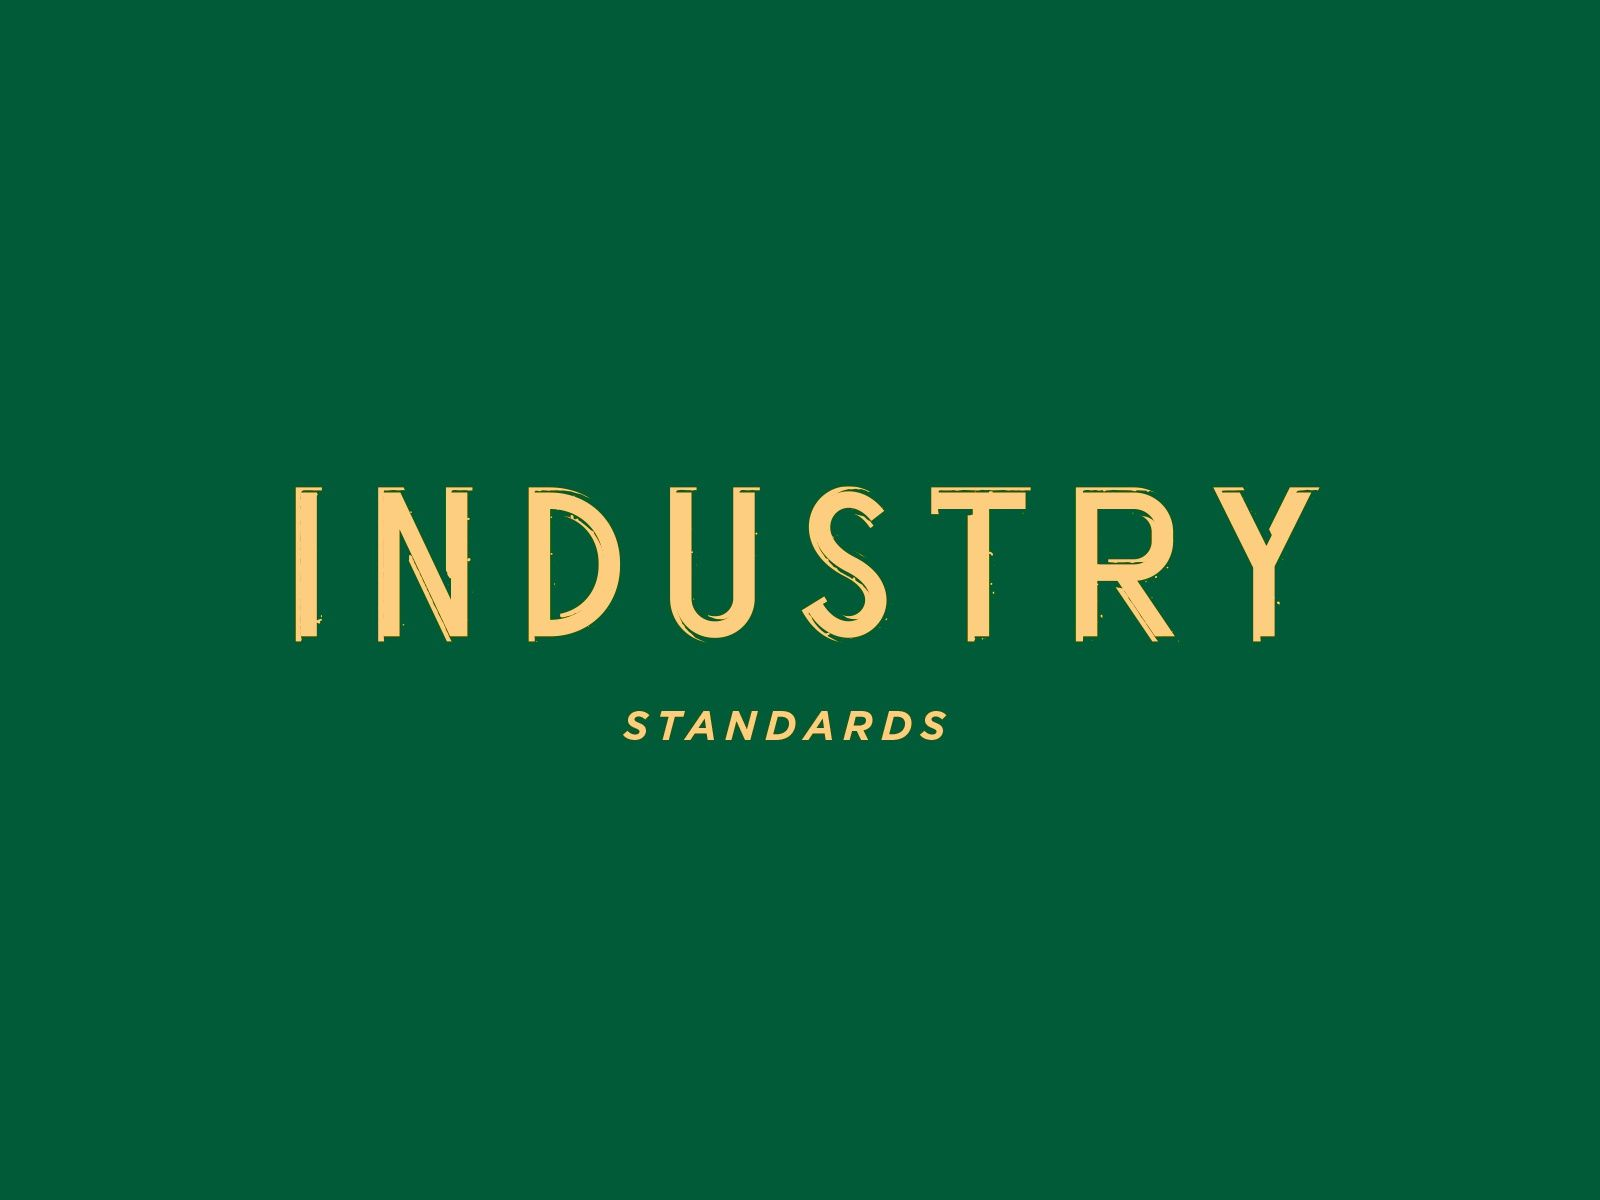 Industry Standards by Jared Owen Snavely